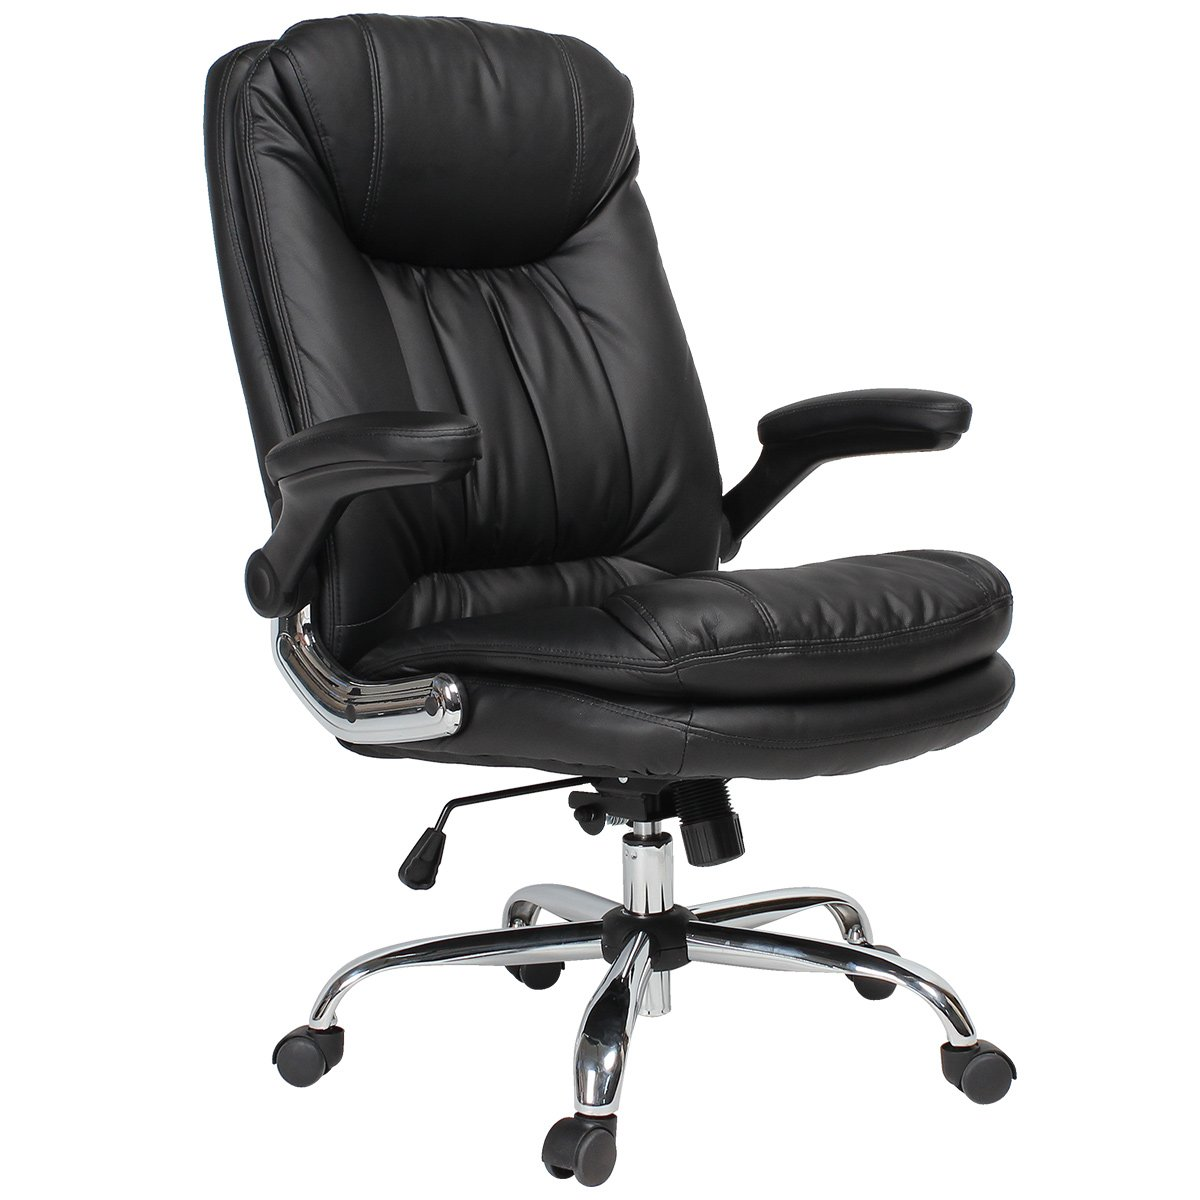 Yamasoro Ergonomic Executive Office Chair High Back Office Desk Chairs Leather Computer Chair Adjustable Tilt Angle And Flip Up Arms Big For Man And Women Black